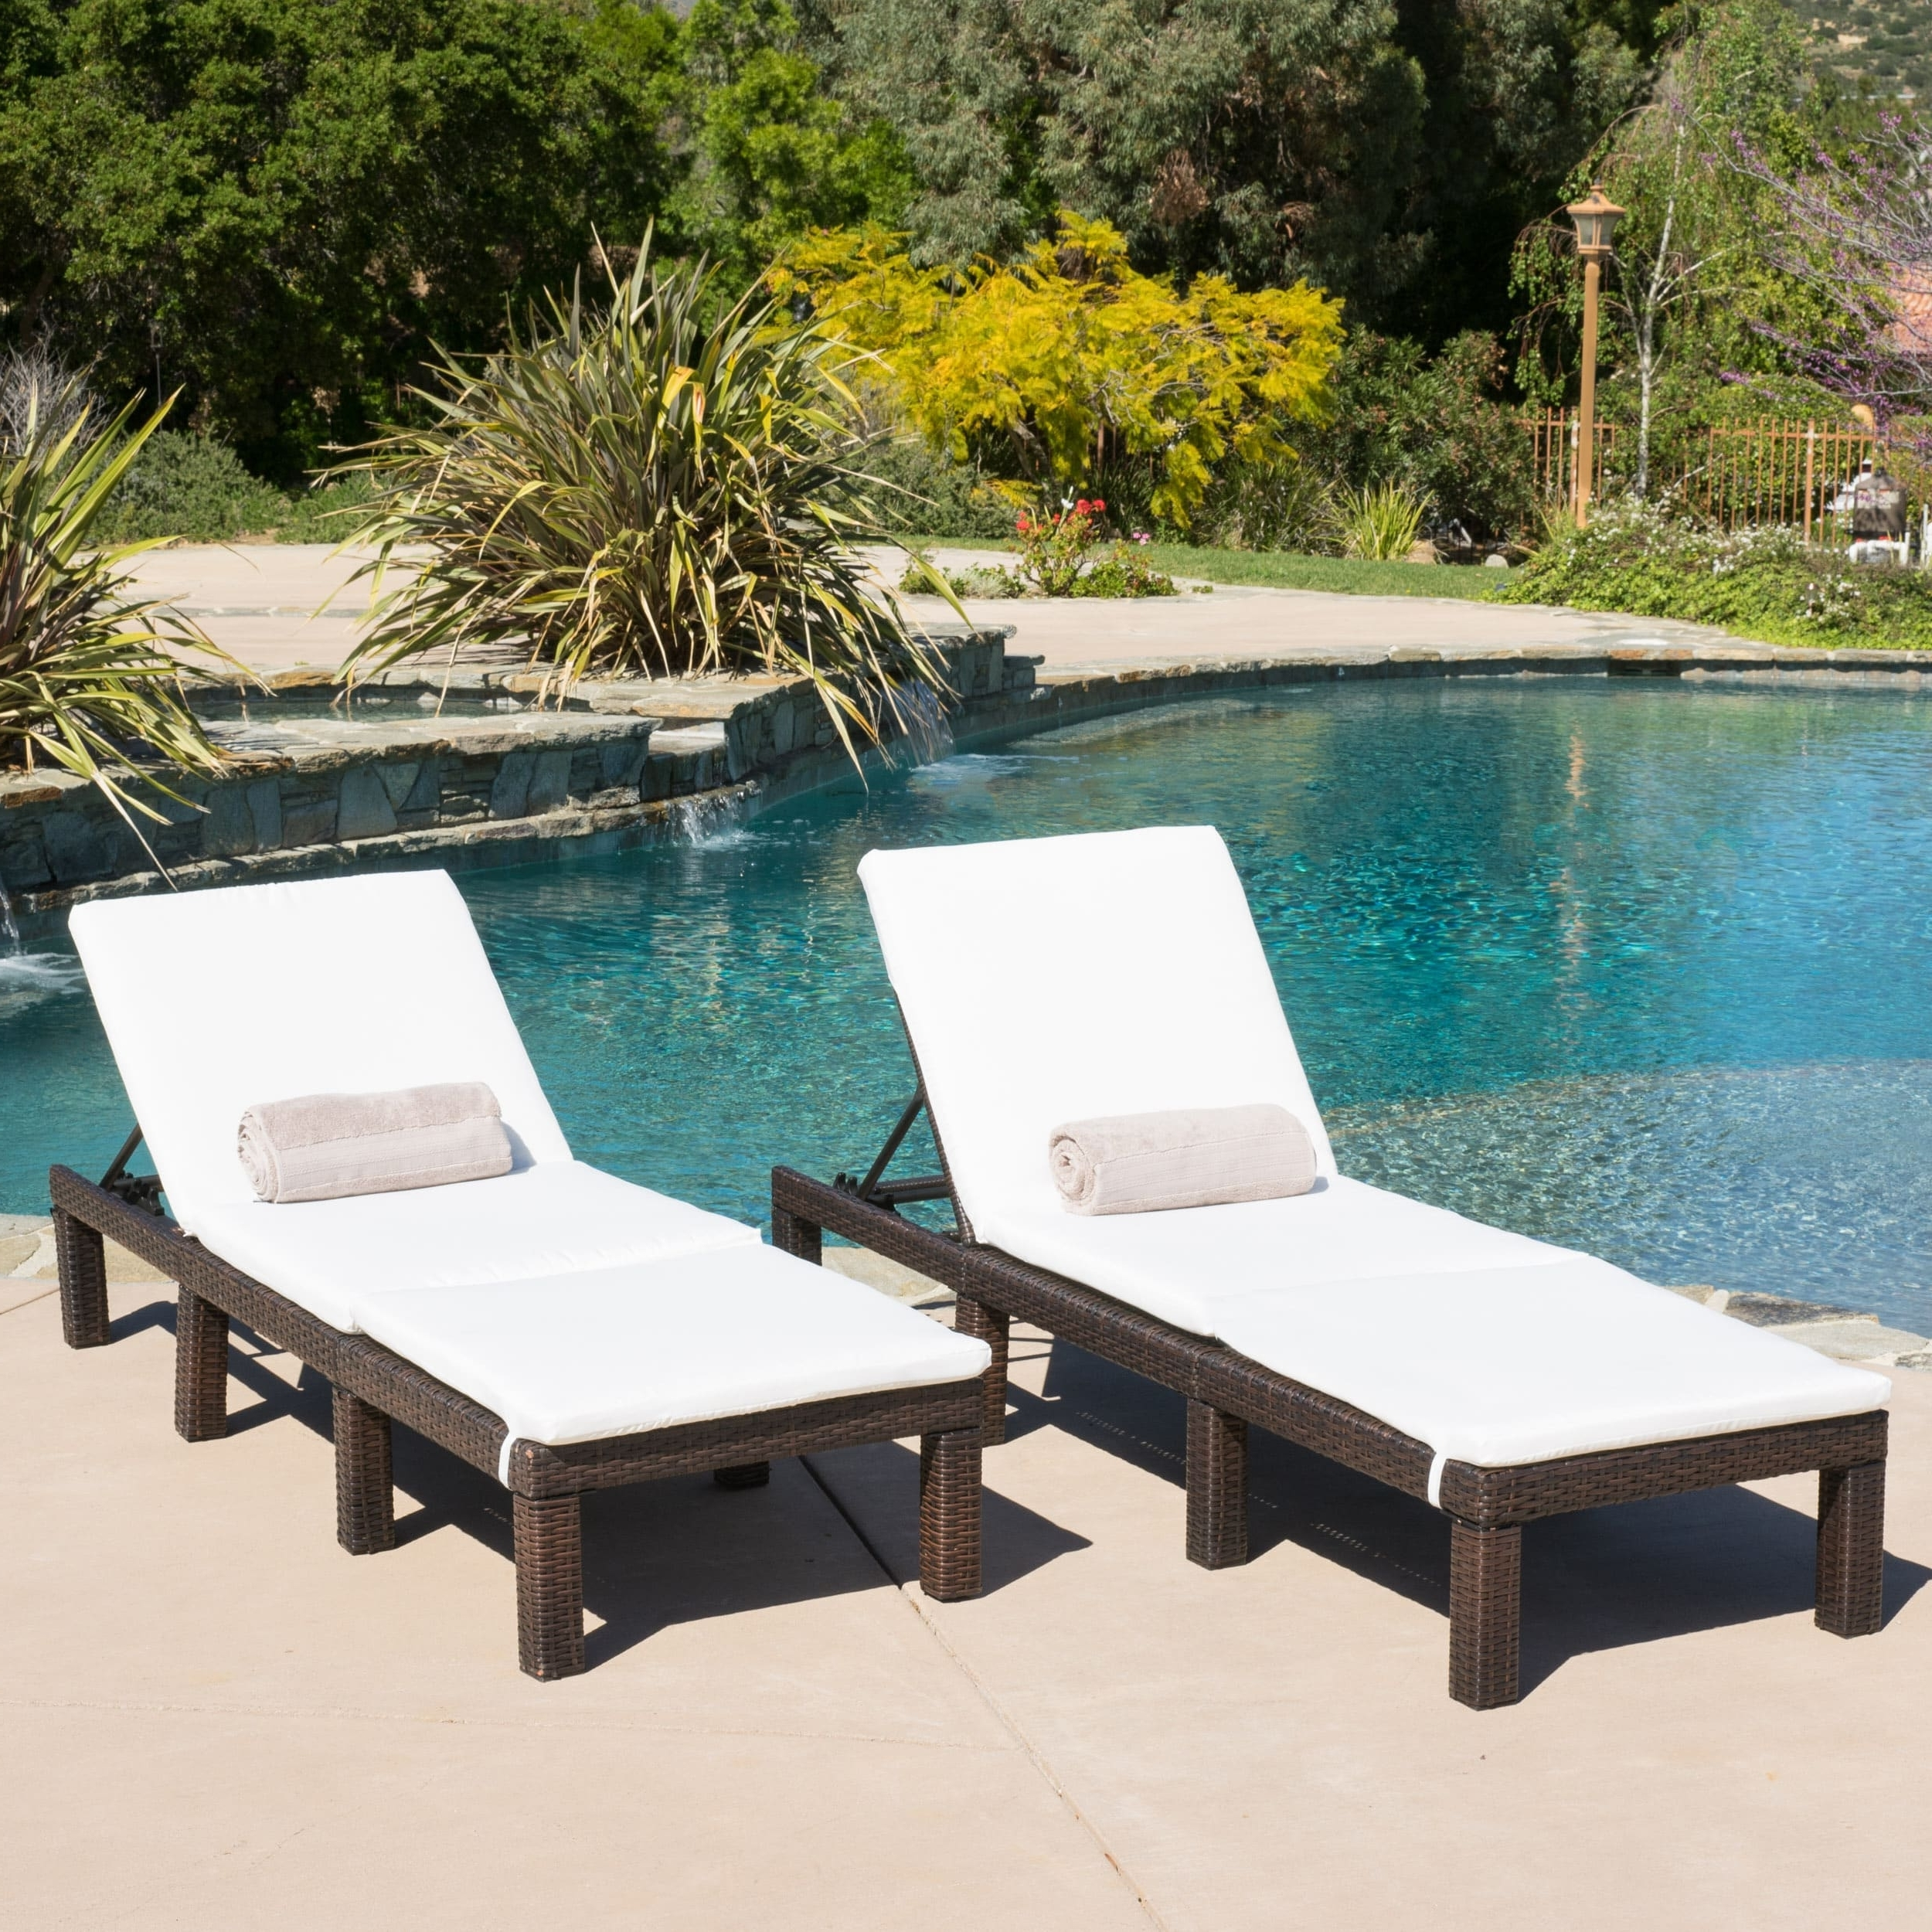 Outdoor Chaises Within Current Jamaica Outdoor Chaise Lounge With Cushion (Set Of 2) (View 13 of 15)